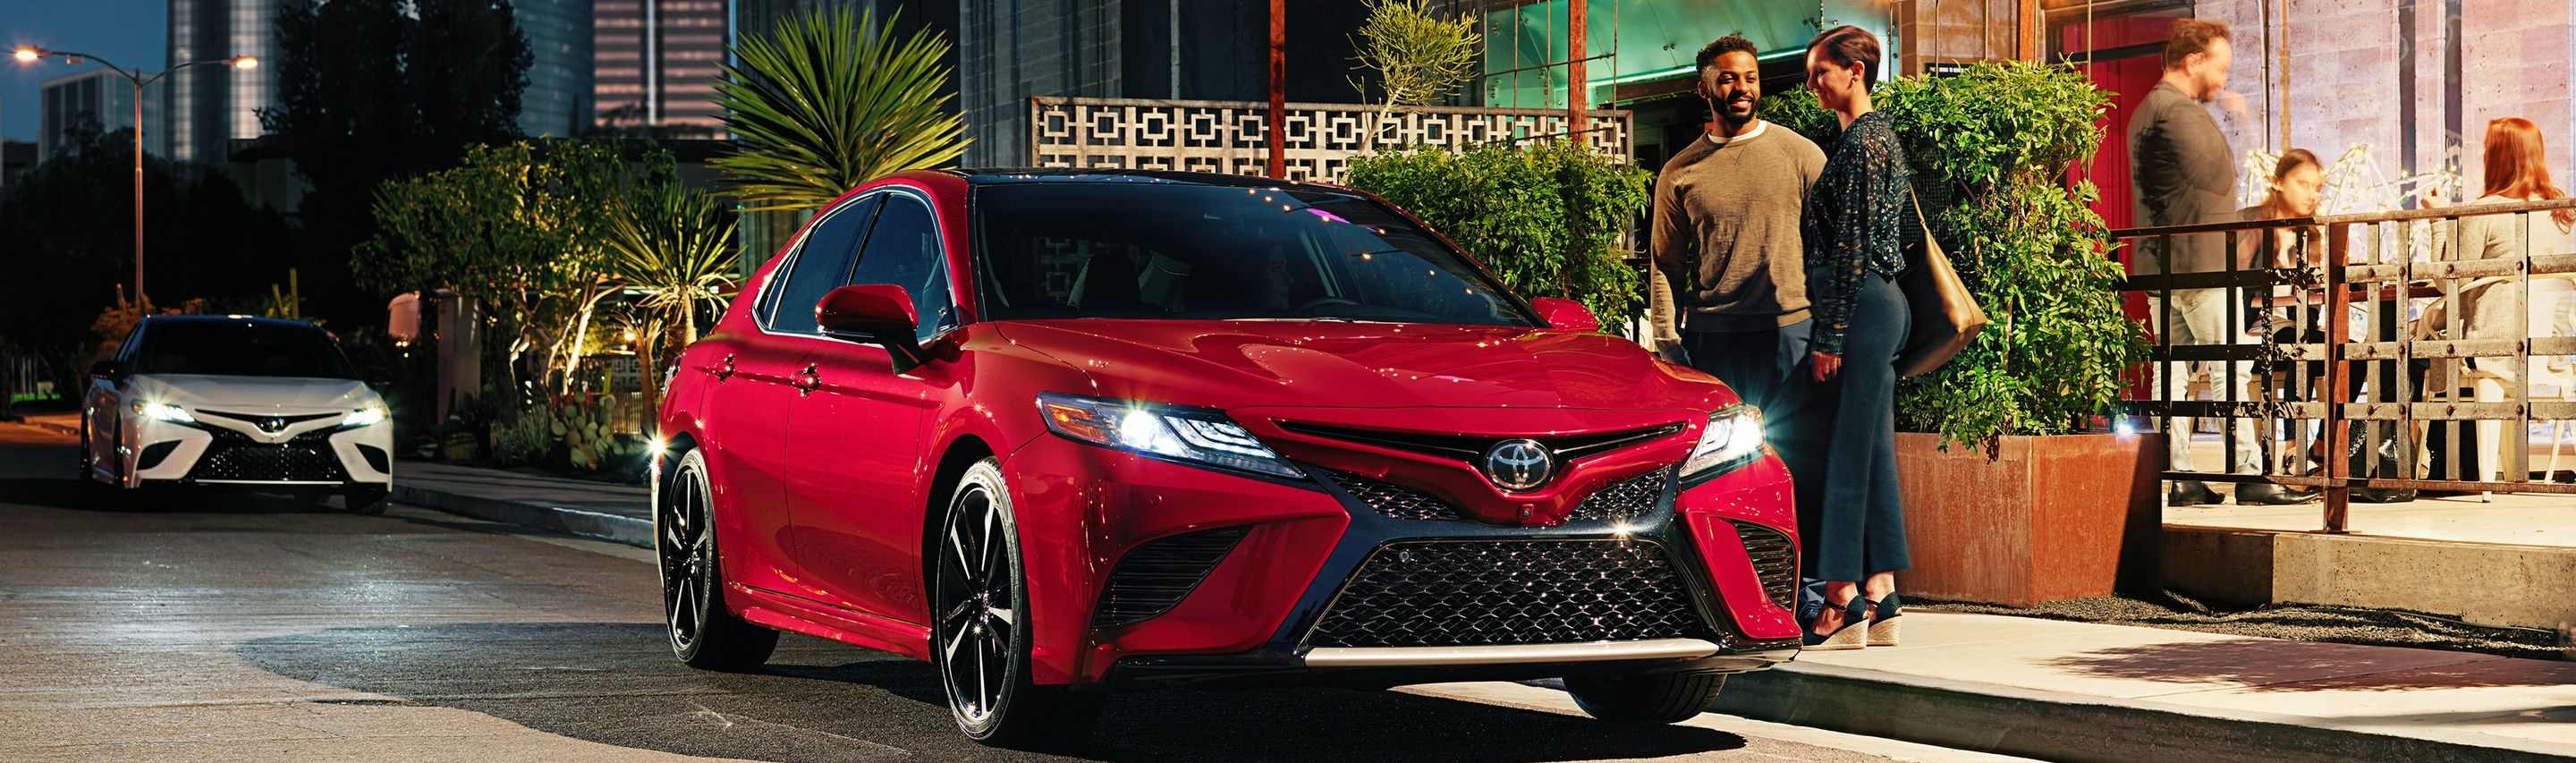 2019 Toyota Camry Leasing in Cleveland, OH